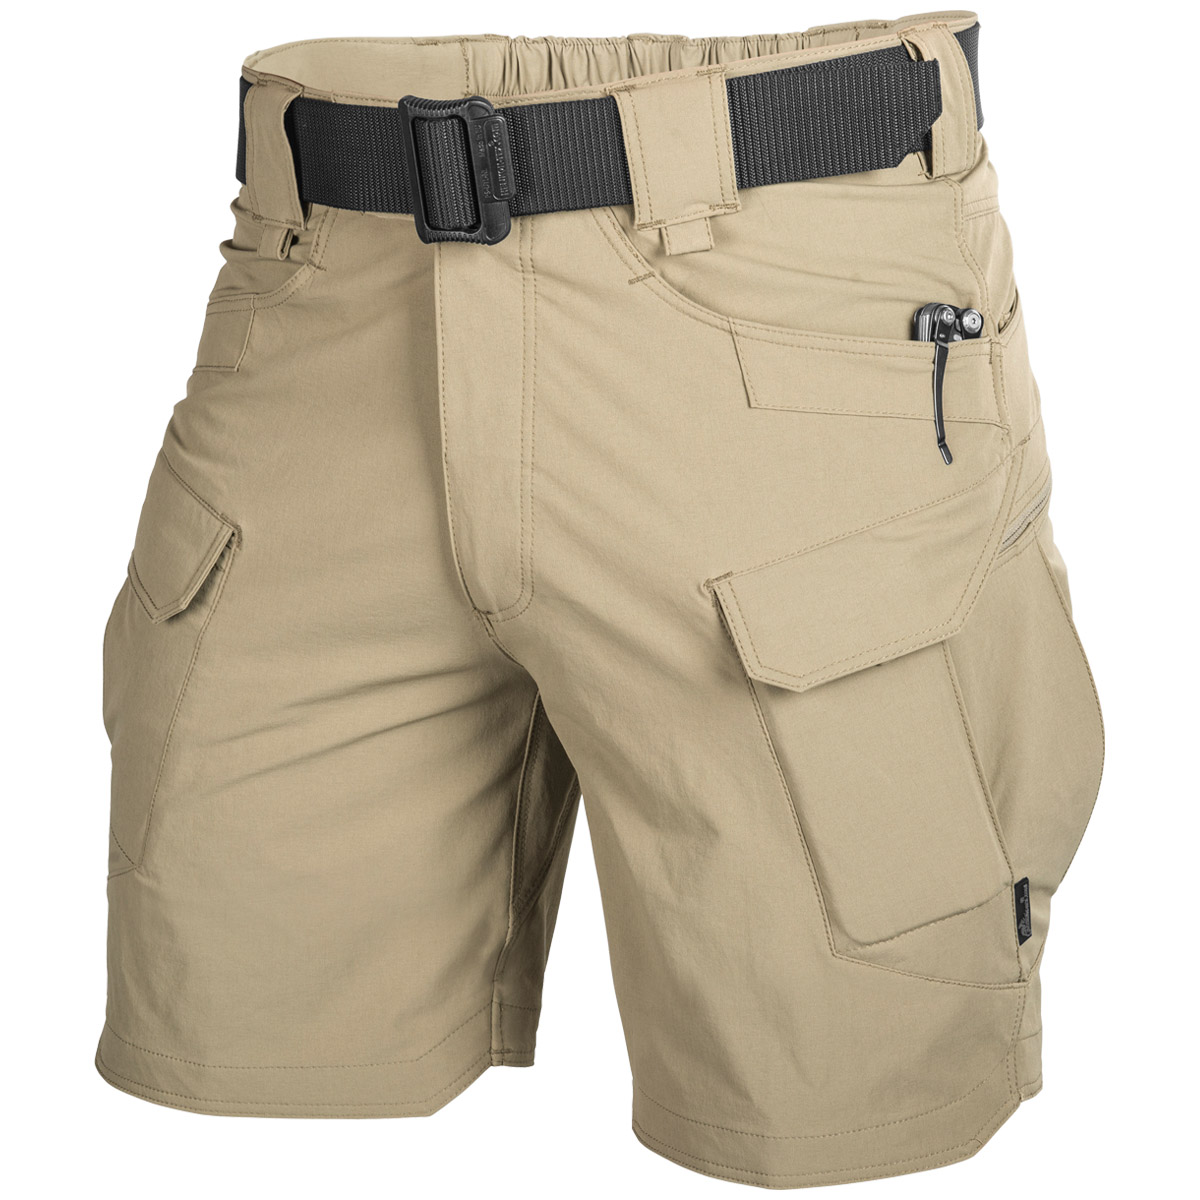 Shop online for Men's Cargo Shorts at forex-2016.ga Find lengths for weekends, walking & hiking. Free Shipping. Free Returns. All the time.